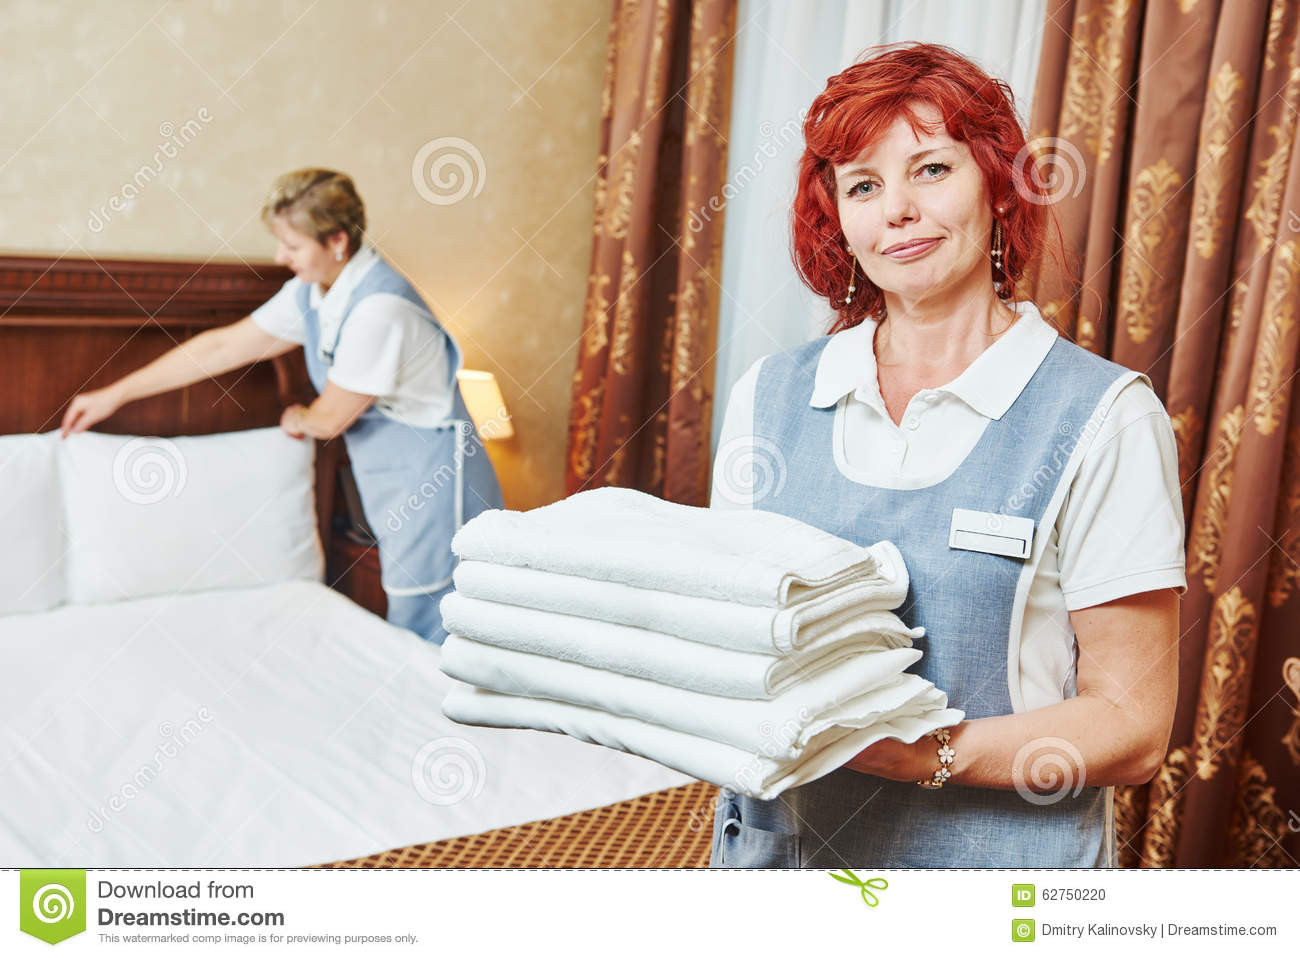 Maid At Work And Cleaning In Luxury Hotel Room Royalty